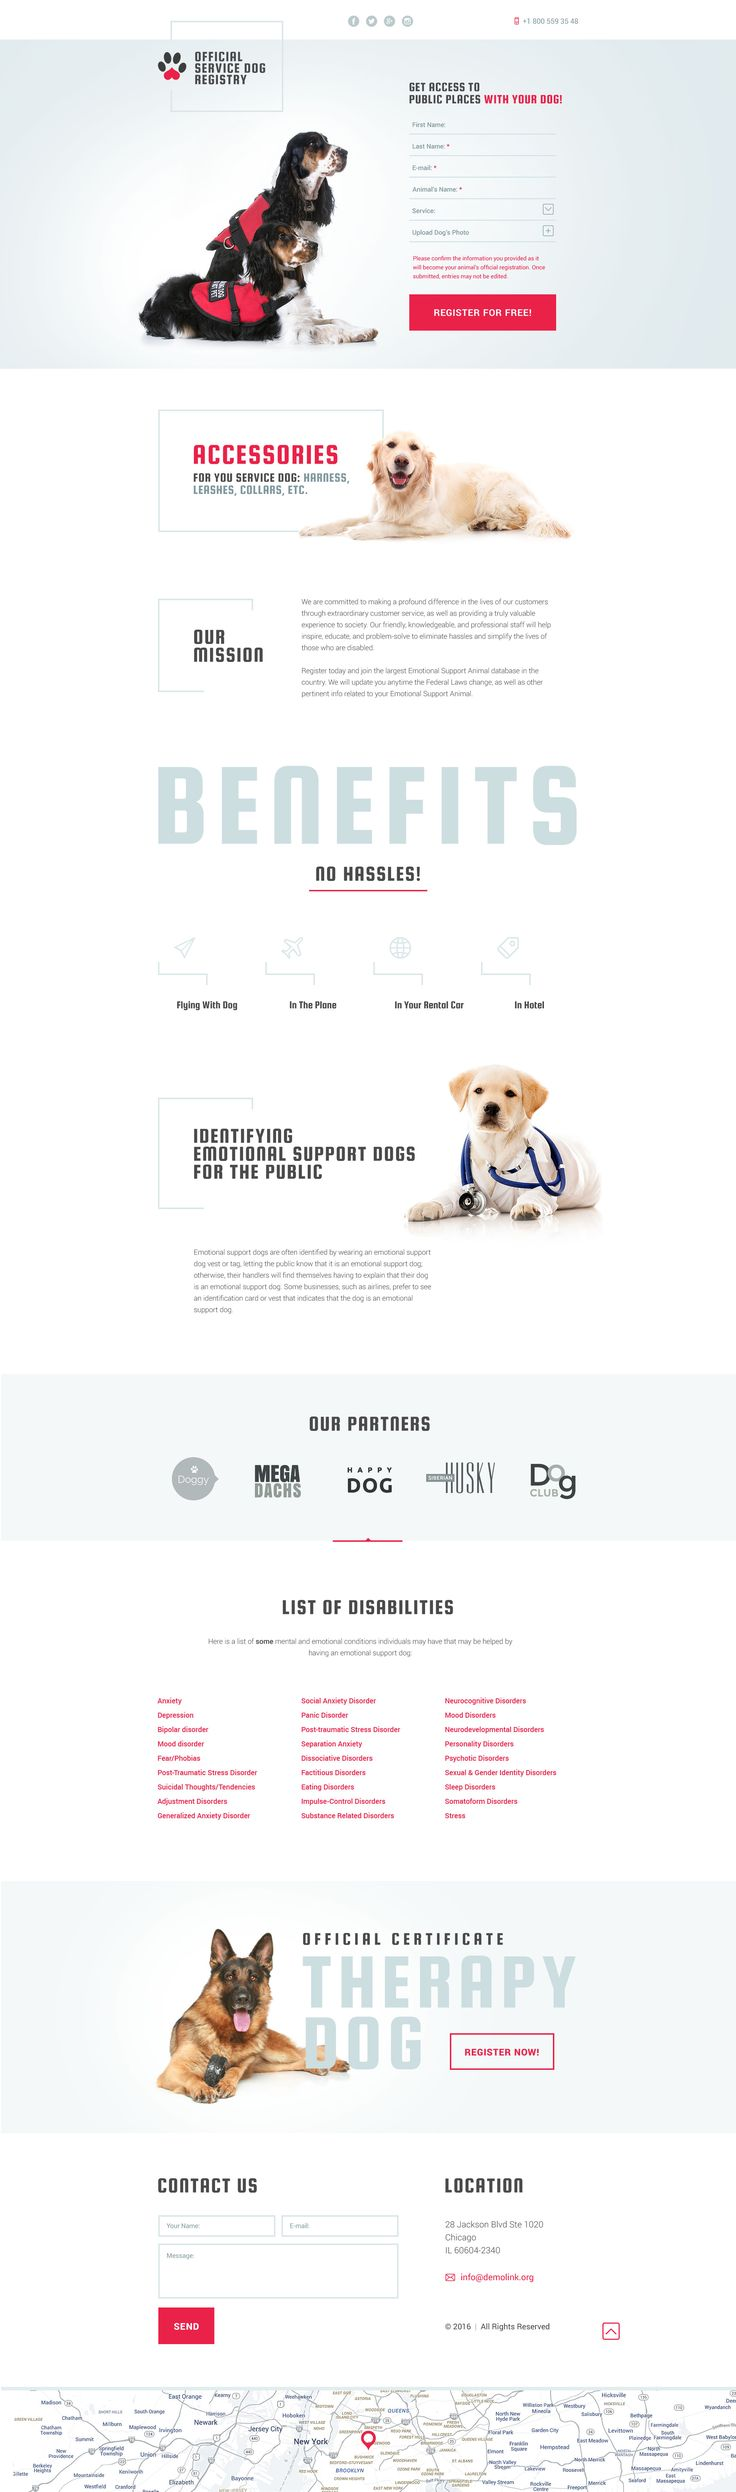 Dog Responsive Landing Page Template #58514 http://www.templatemonster.com/landing-page-template/dog-responsive-landing-page-template-58514.html